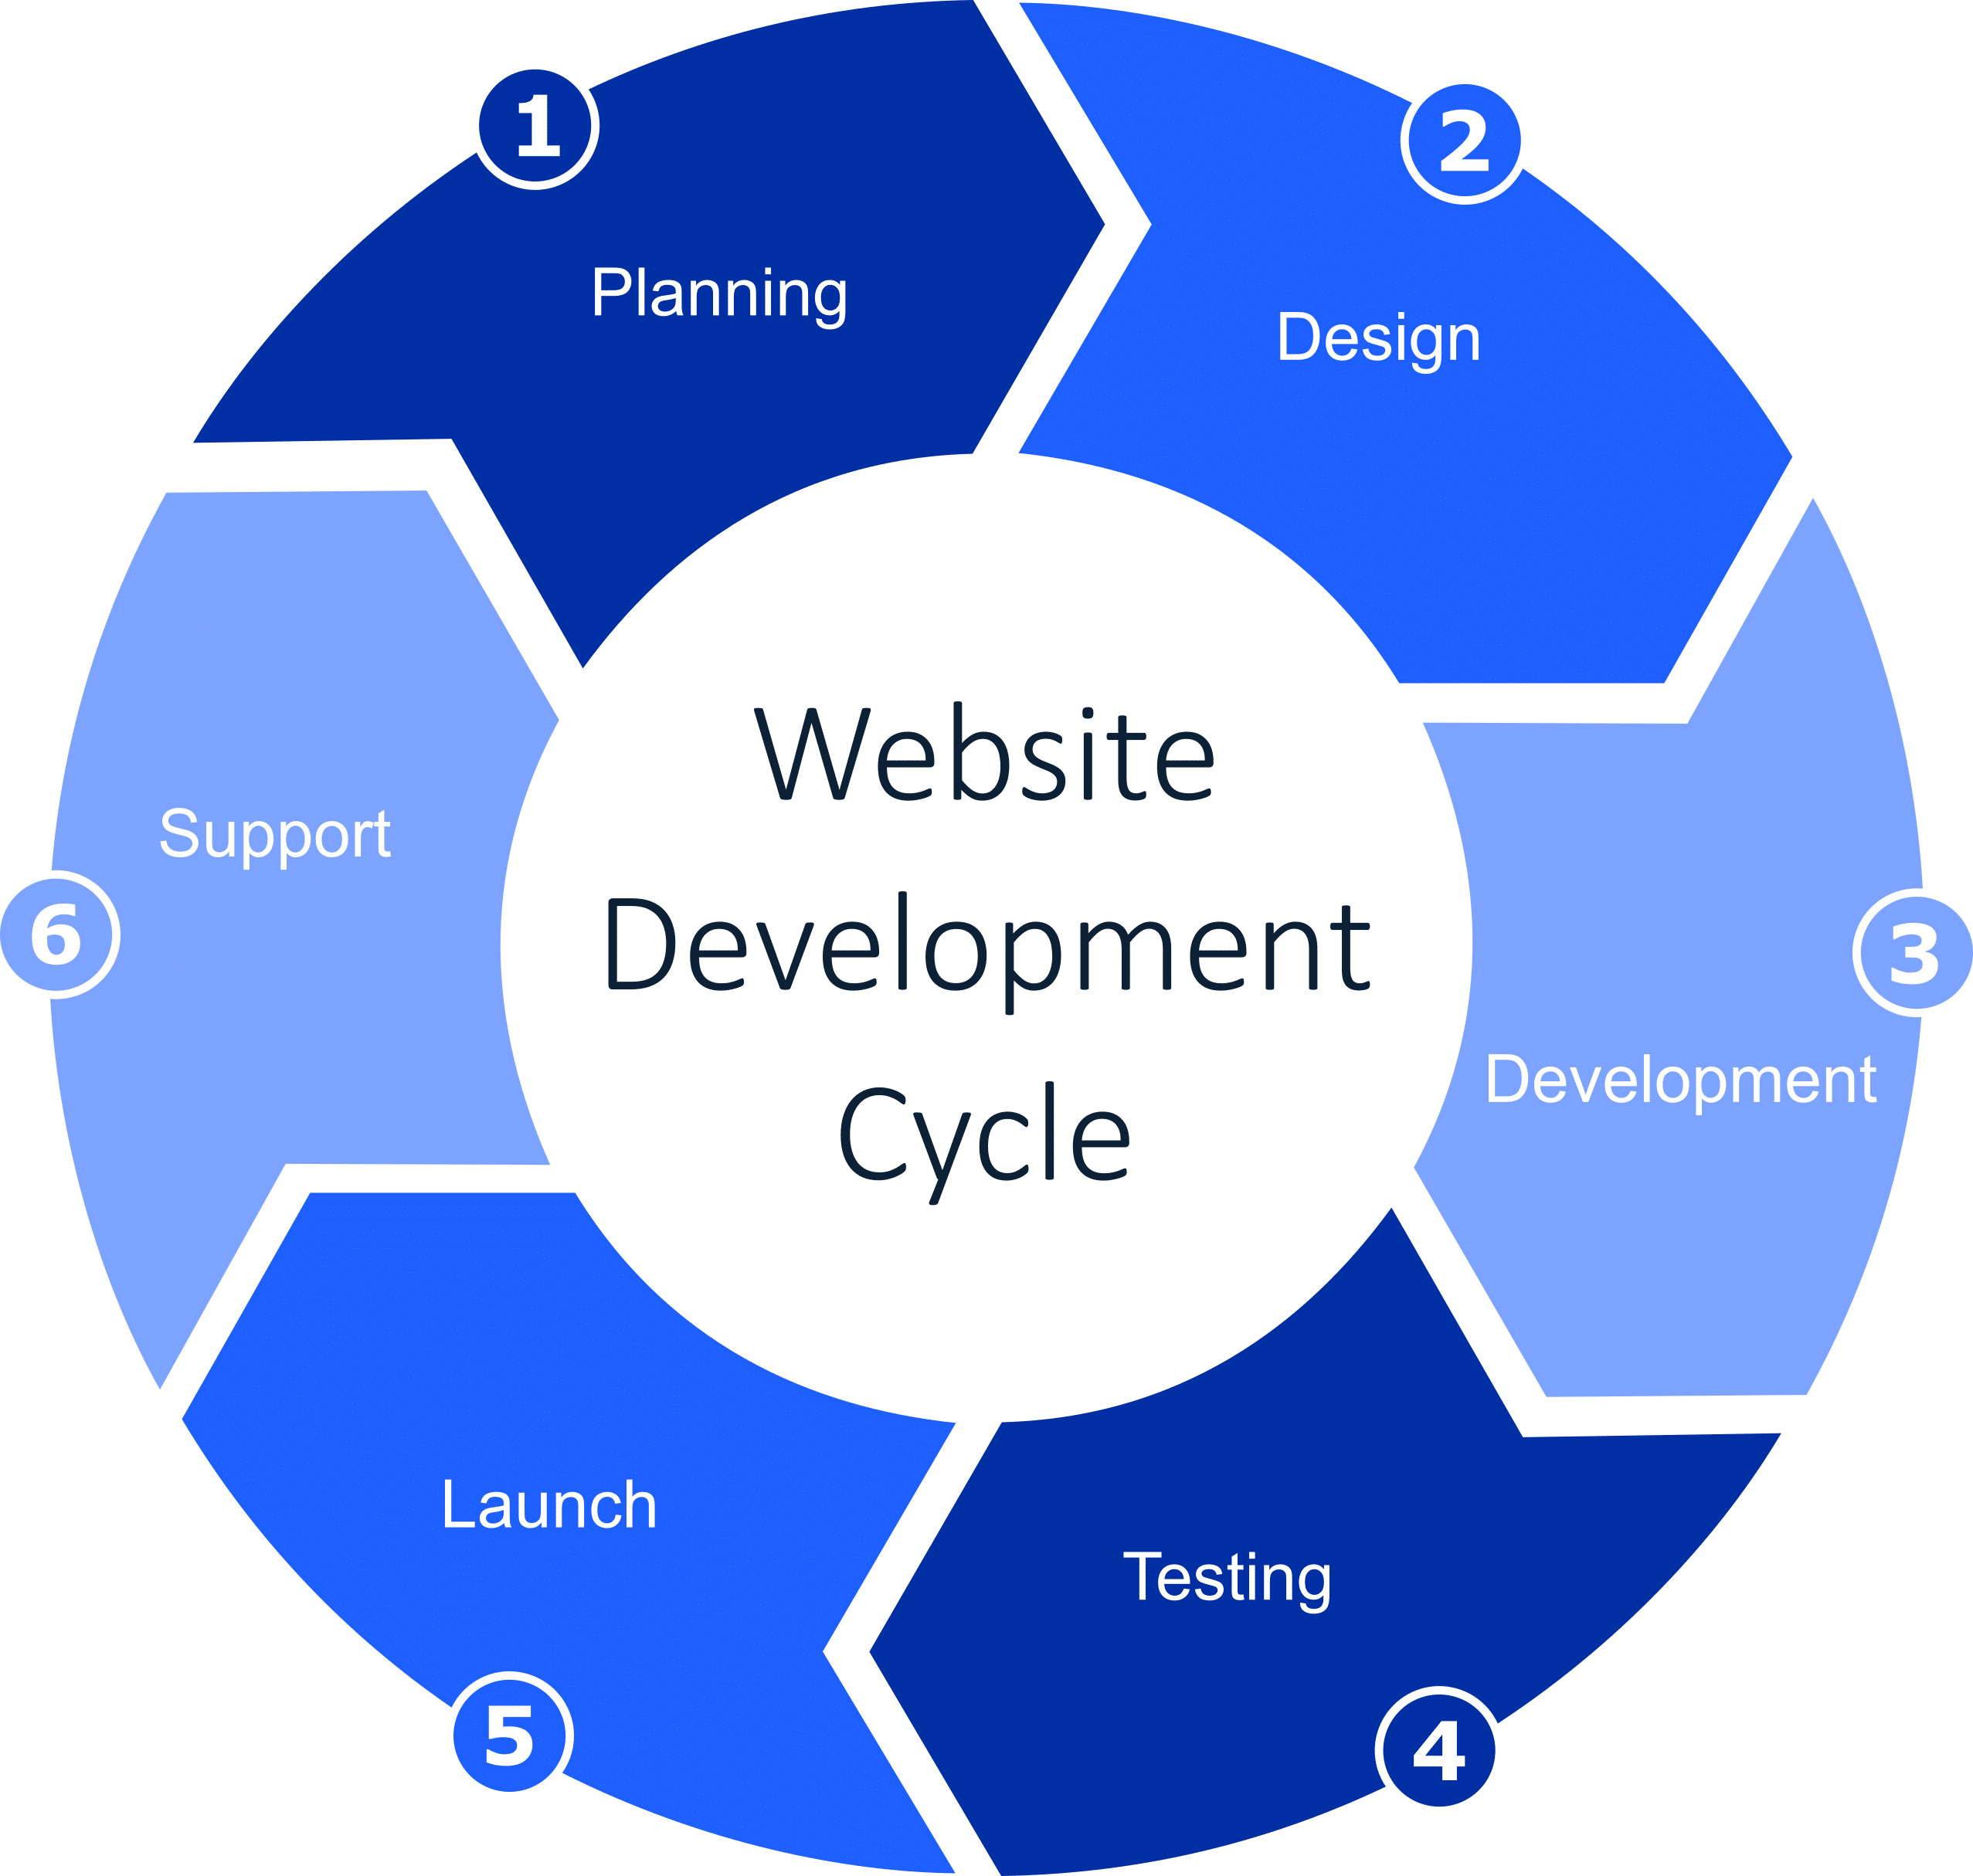 Website Development Cycle - Blue Oak Chico